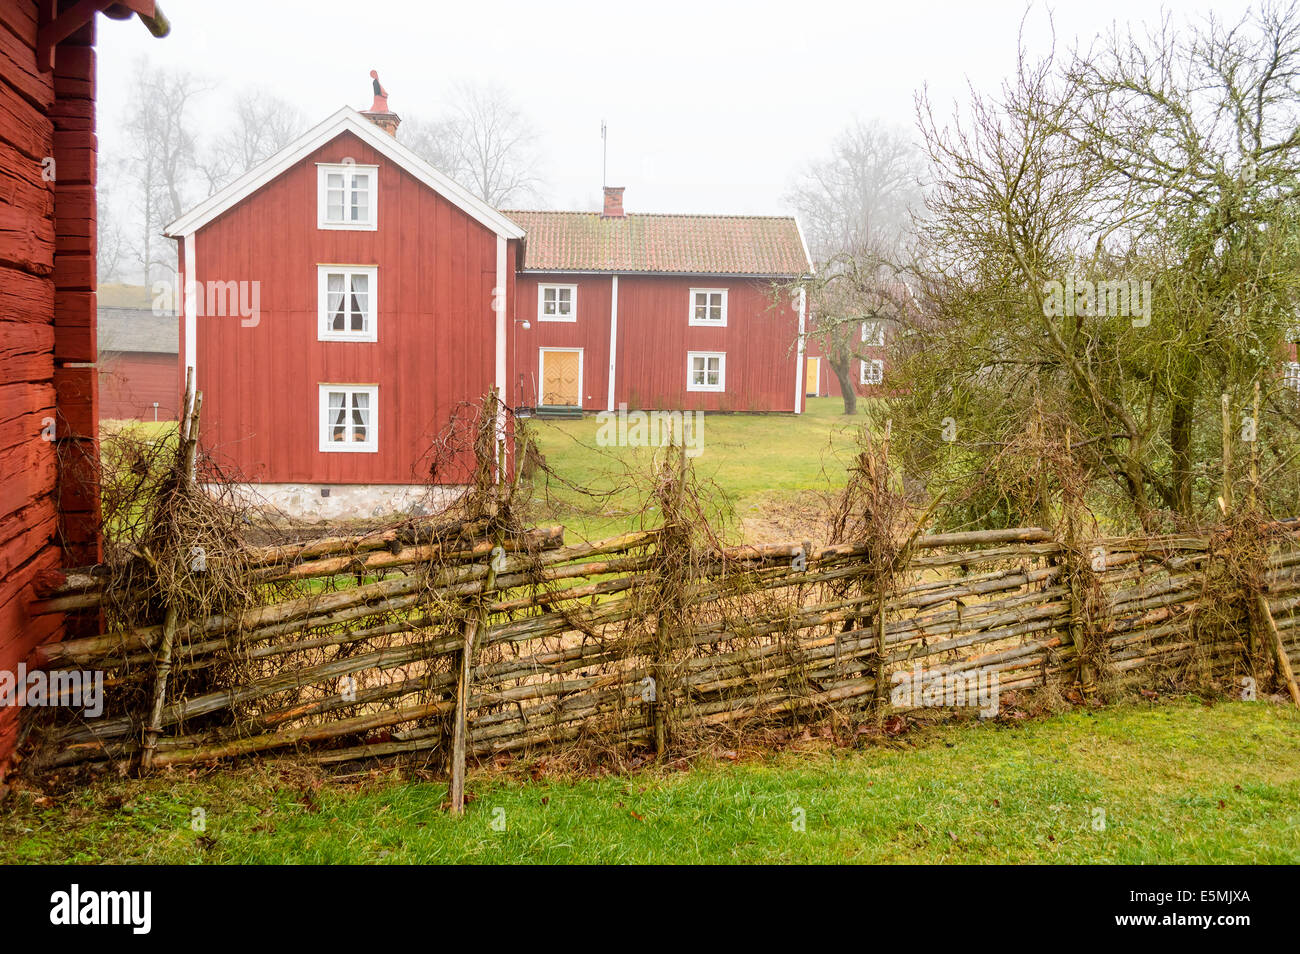 Farm environment in Sweden from around the years 1700 to 1800. Main farm buildings for the farmer with family. - Stock Image